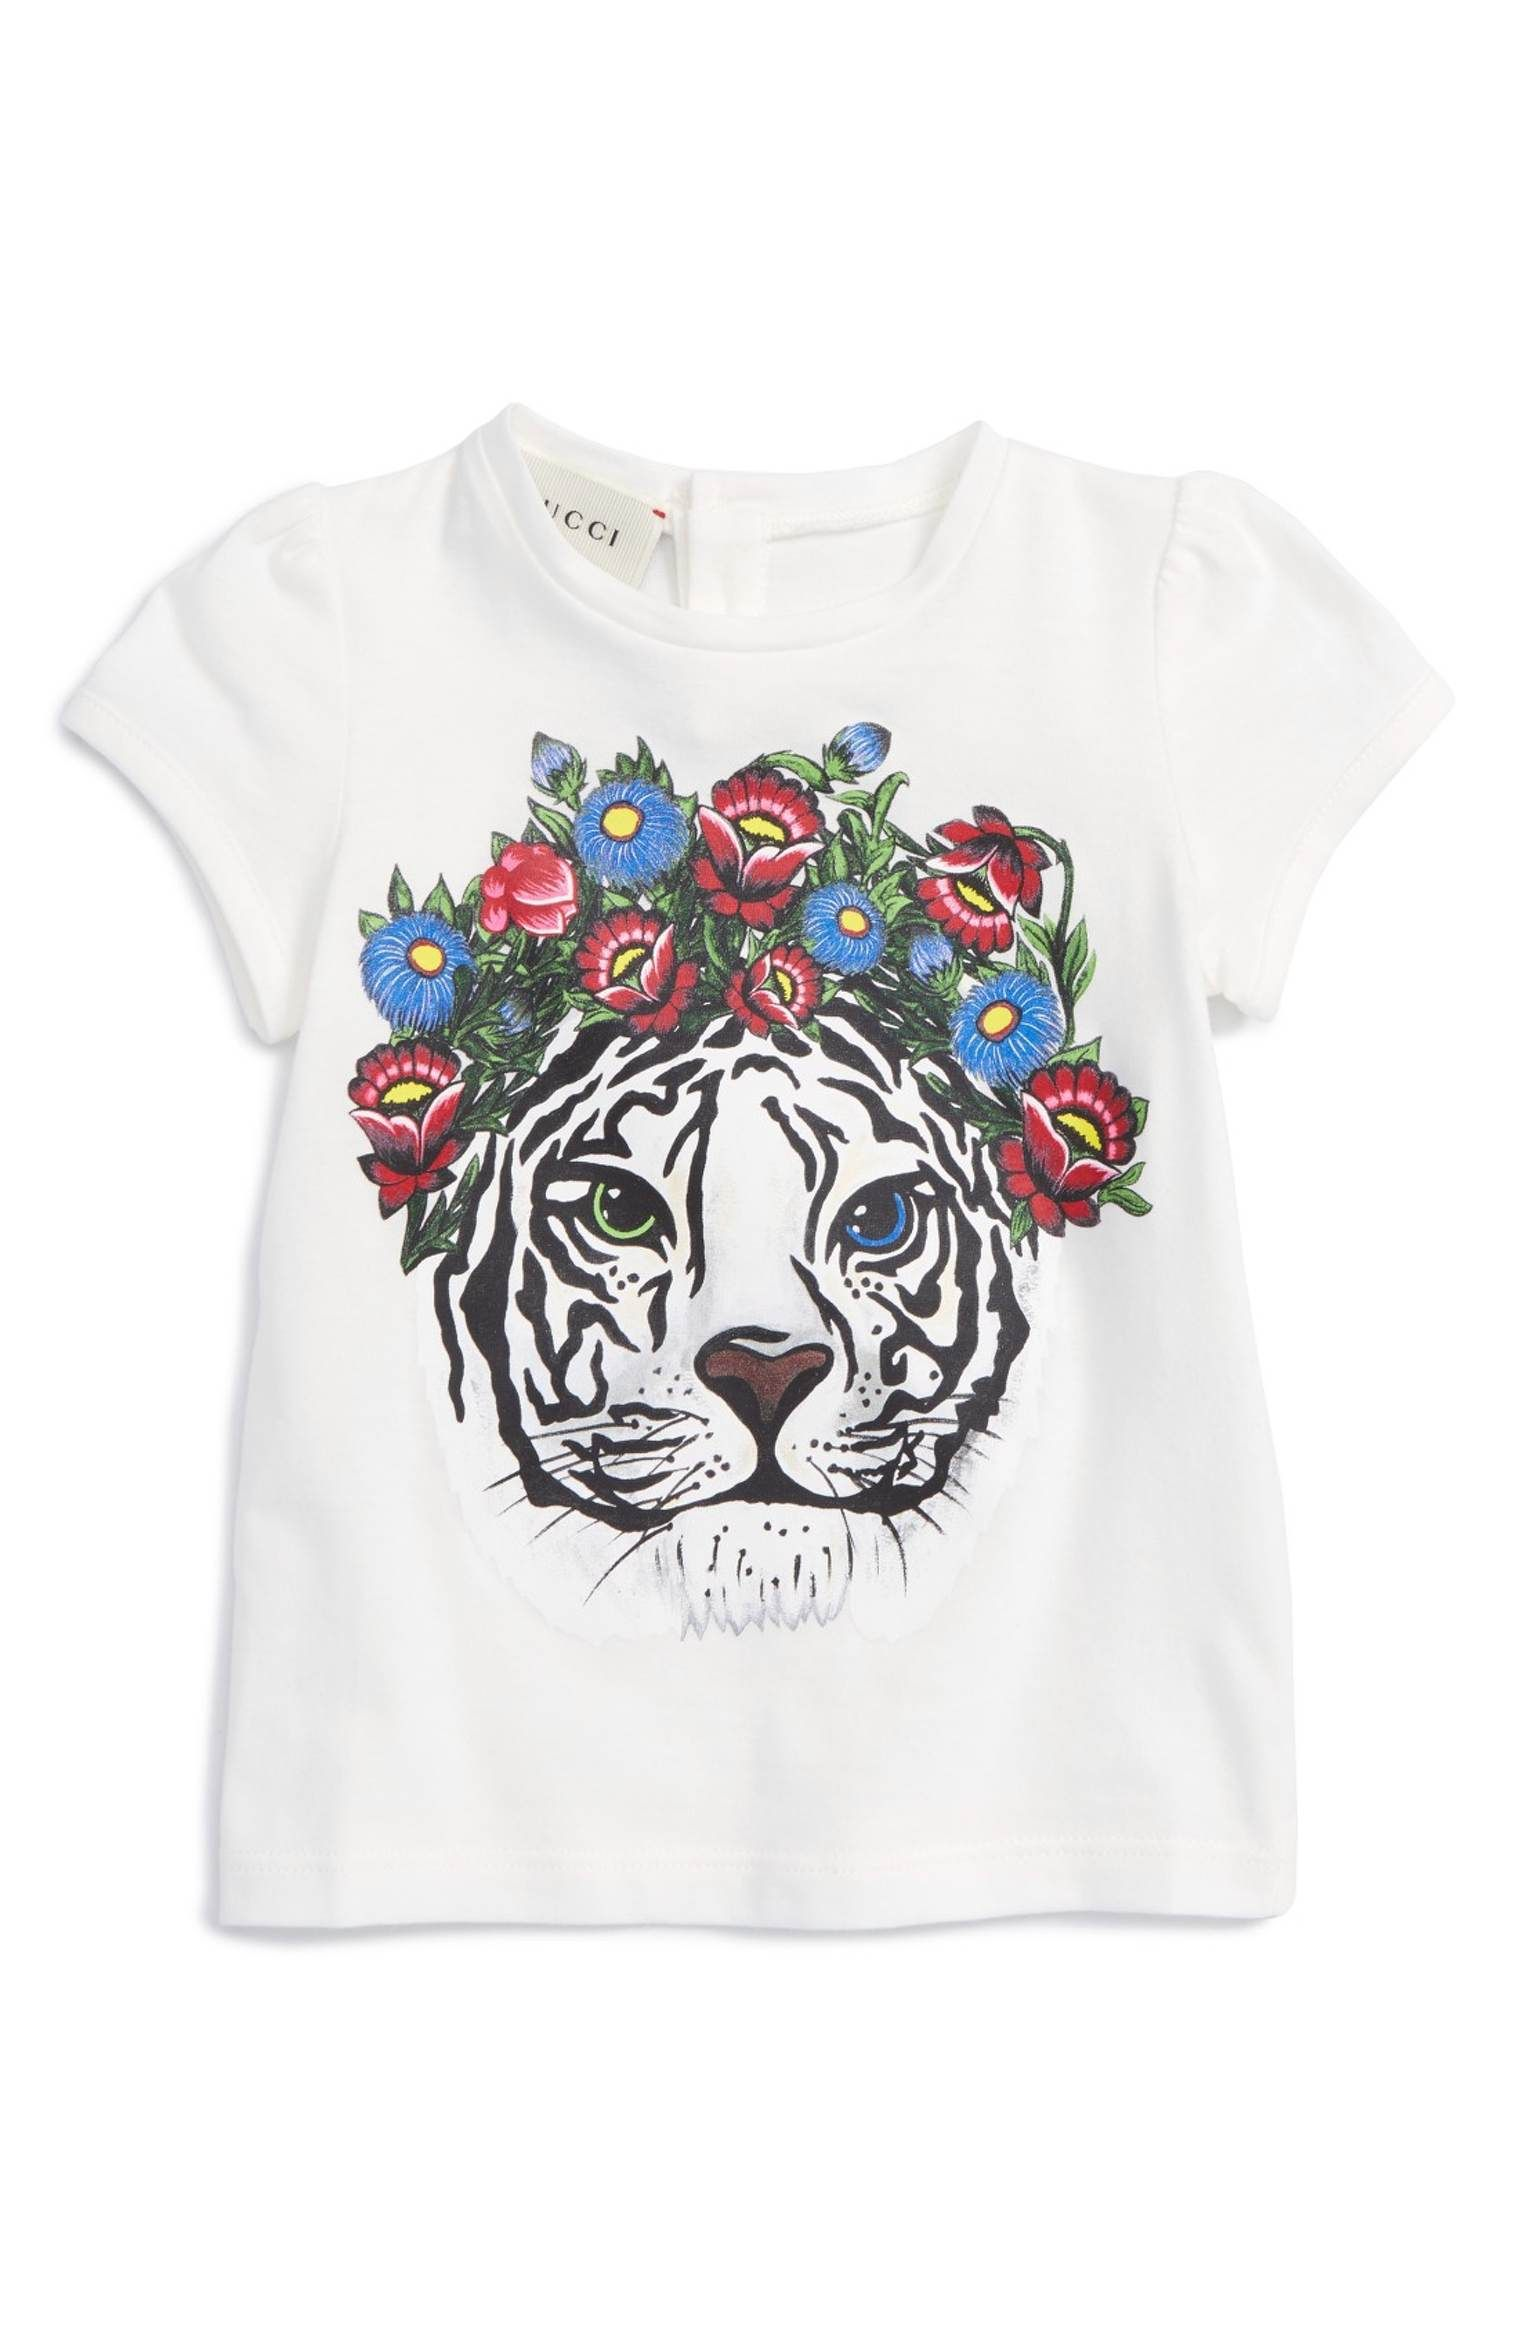 a7ef72e14 Main Image - Gucci Tiger Graphic Tee (Baby Girls) | Fendi and Gucci ...